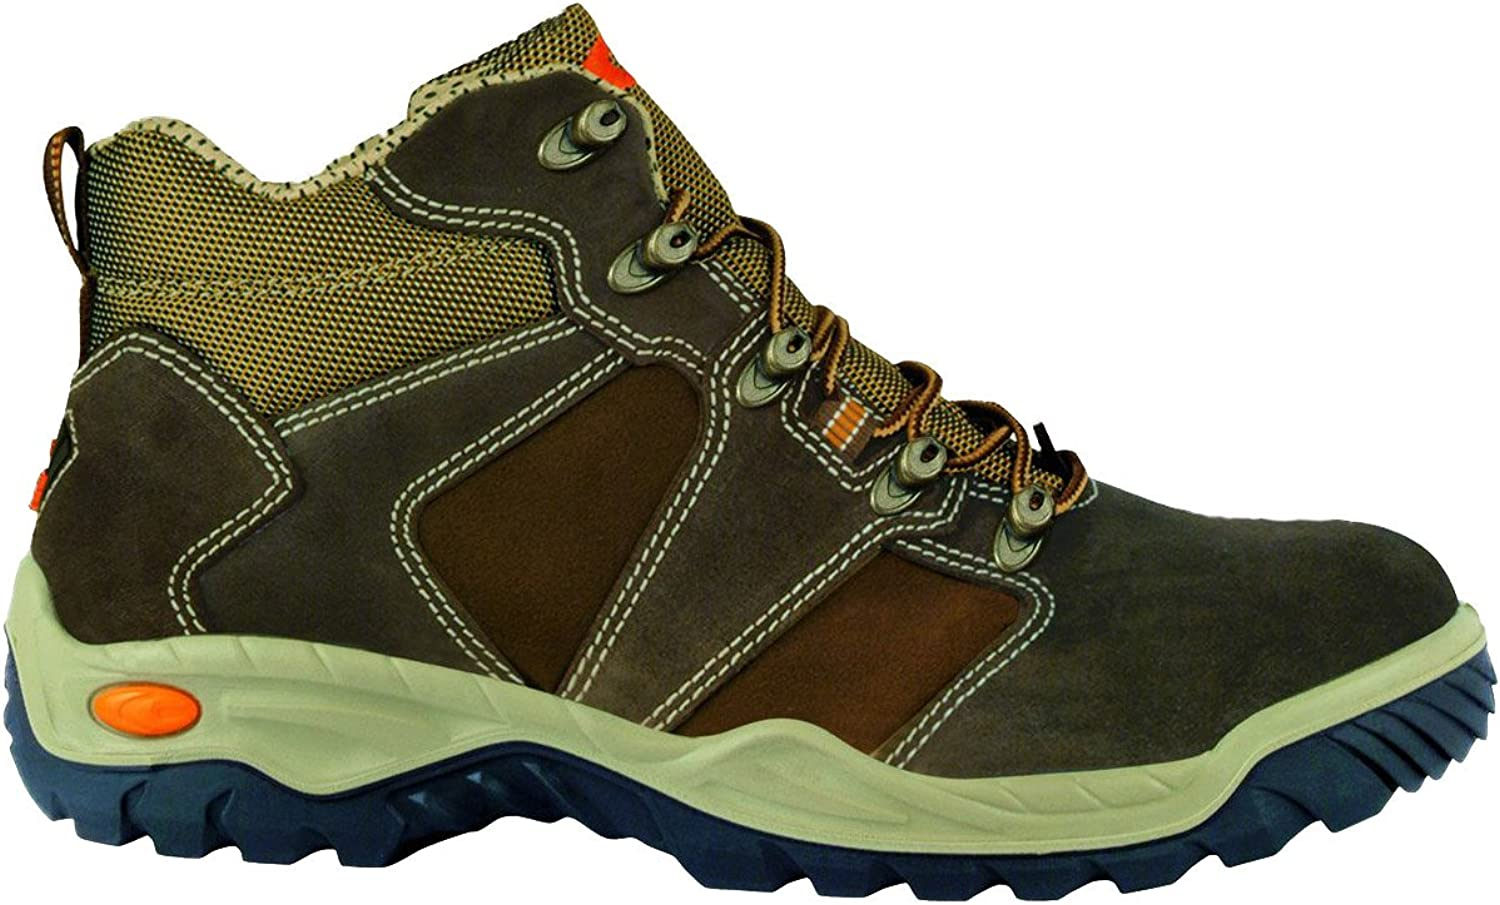 Cofra 75550-003.W47 Safety shoes New Soul S3 SRC Size 47 in Brown